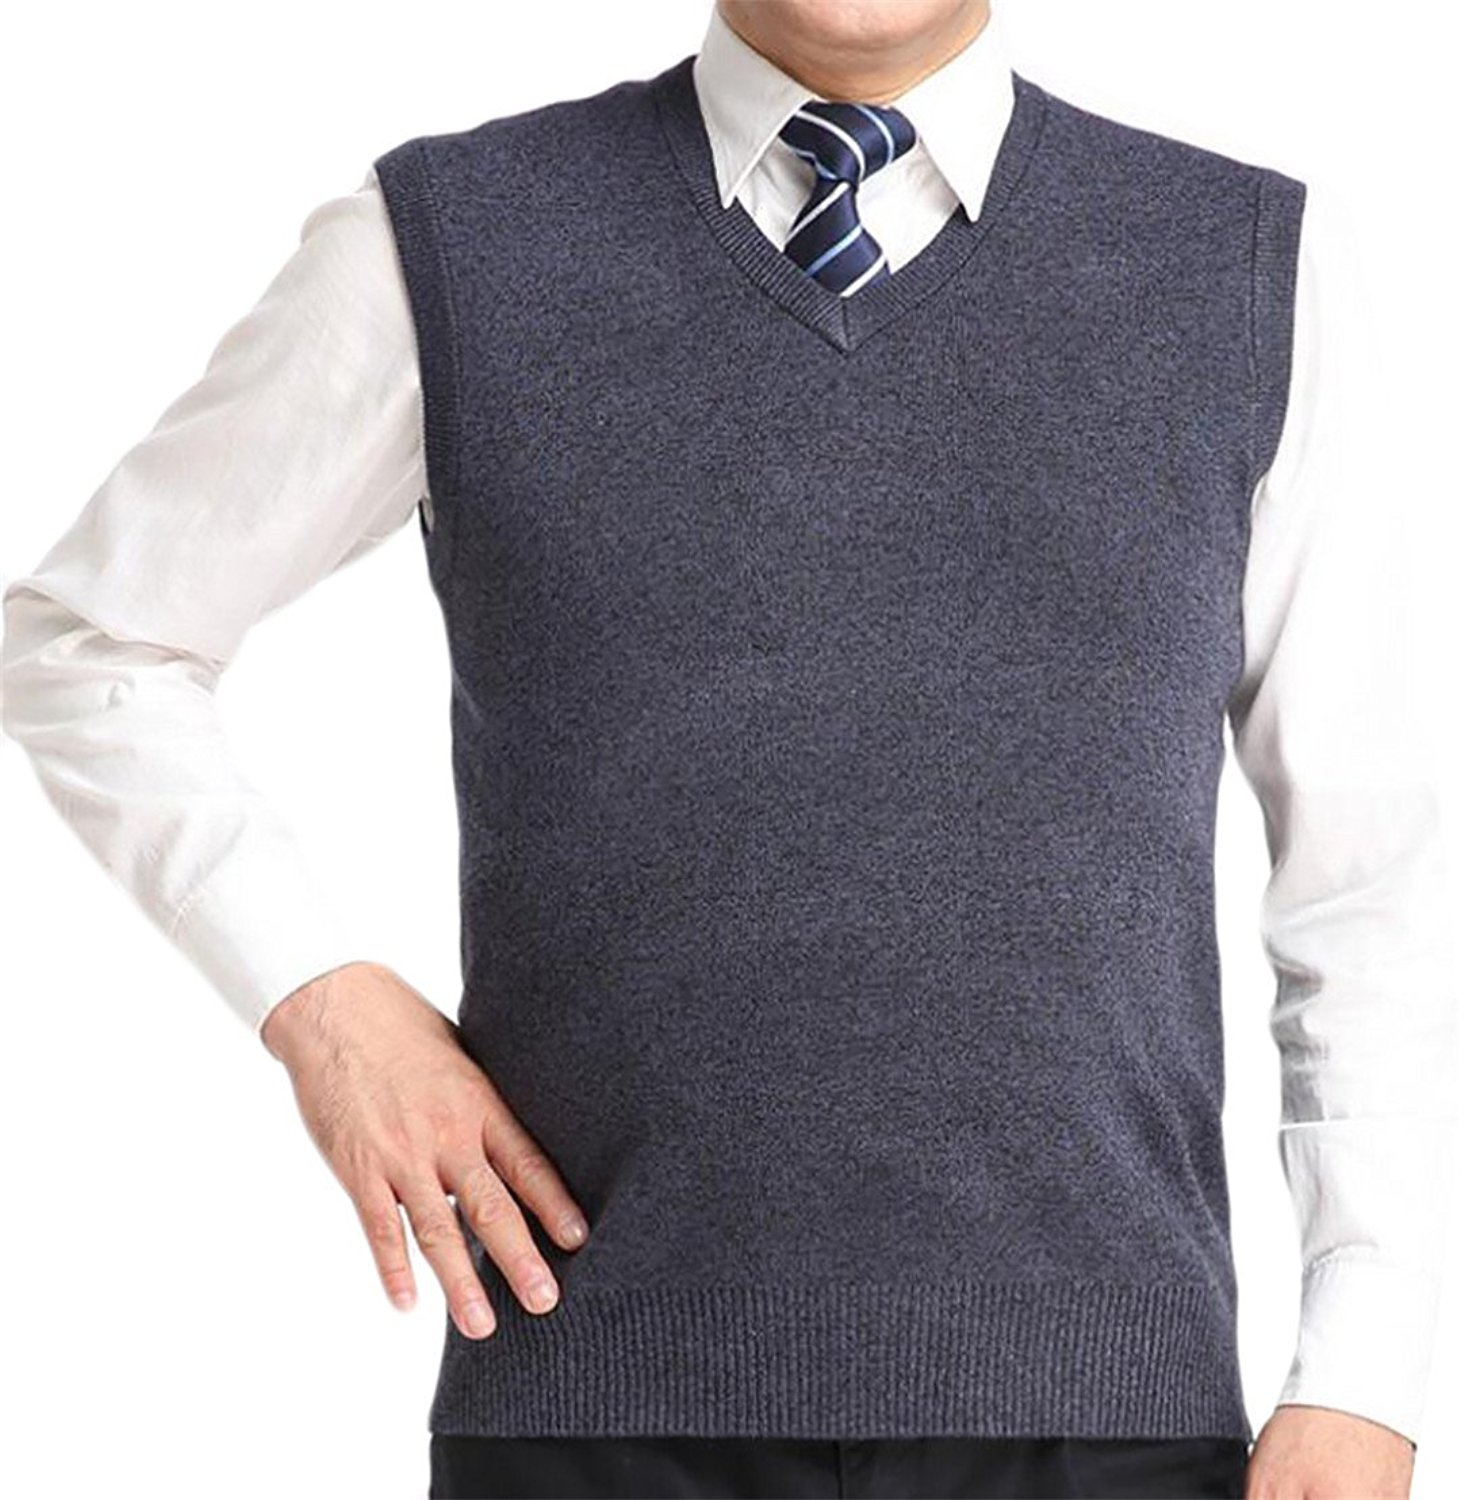 85d870c29 Get Quotations · Be Loved Beloved Mens Fashion Casual Slim Fit Soft Solid  Color Pullover Cable Sweater Vest